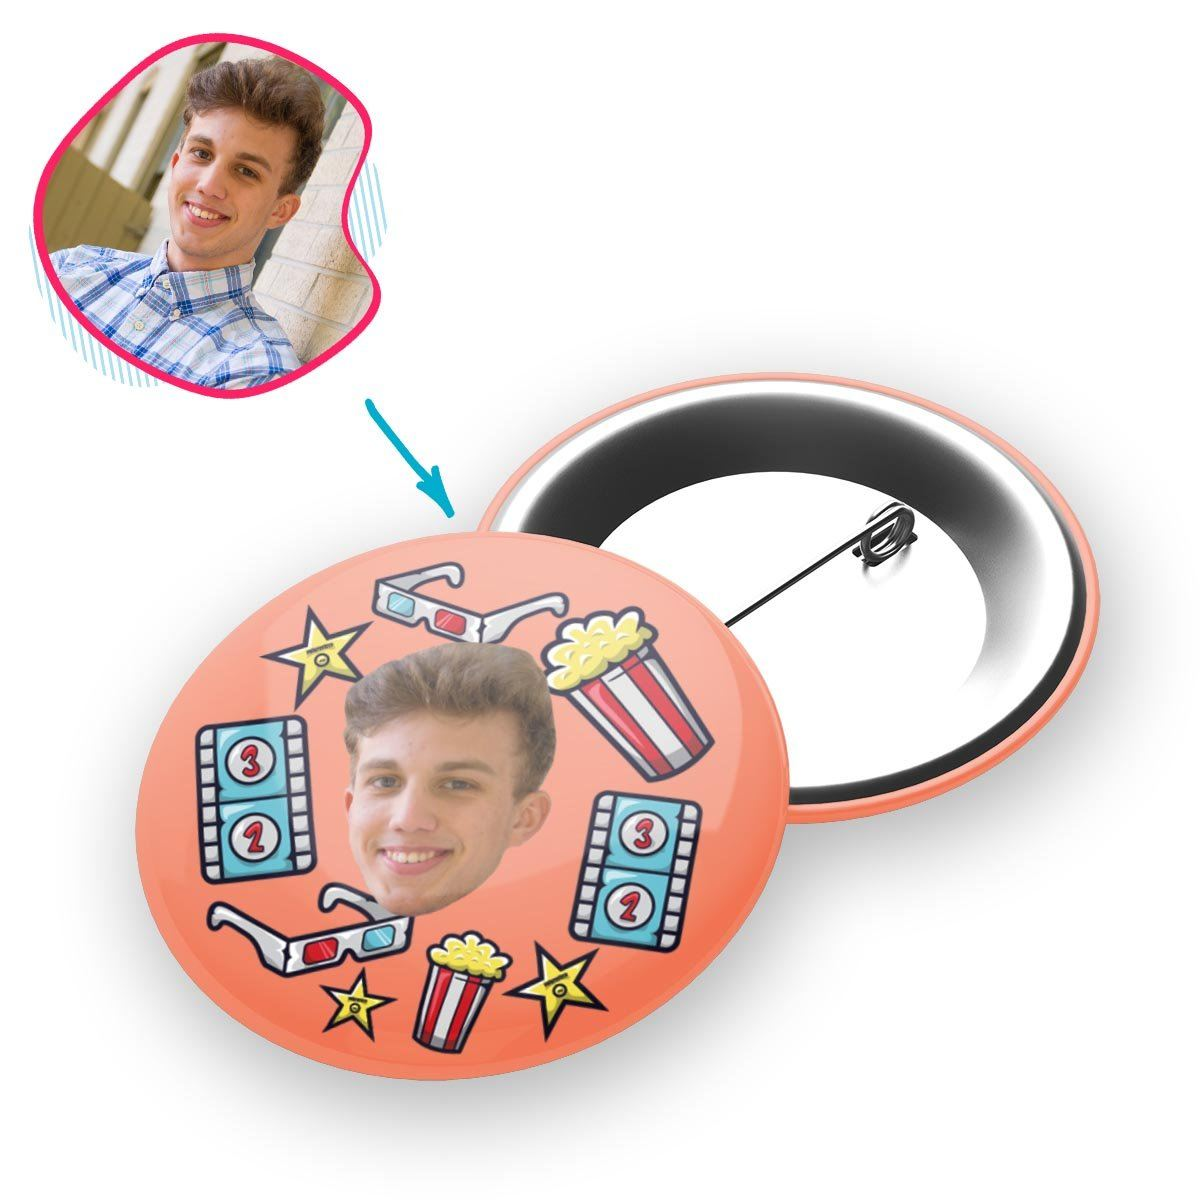 salmon Movie pin personalized with photo of face printed on it